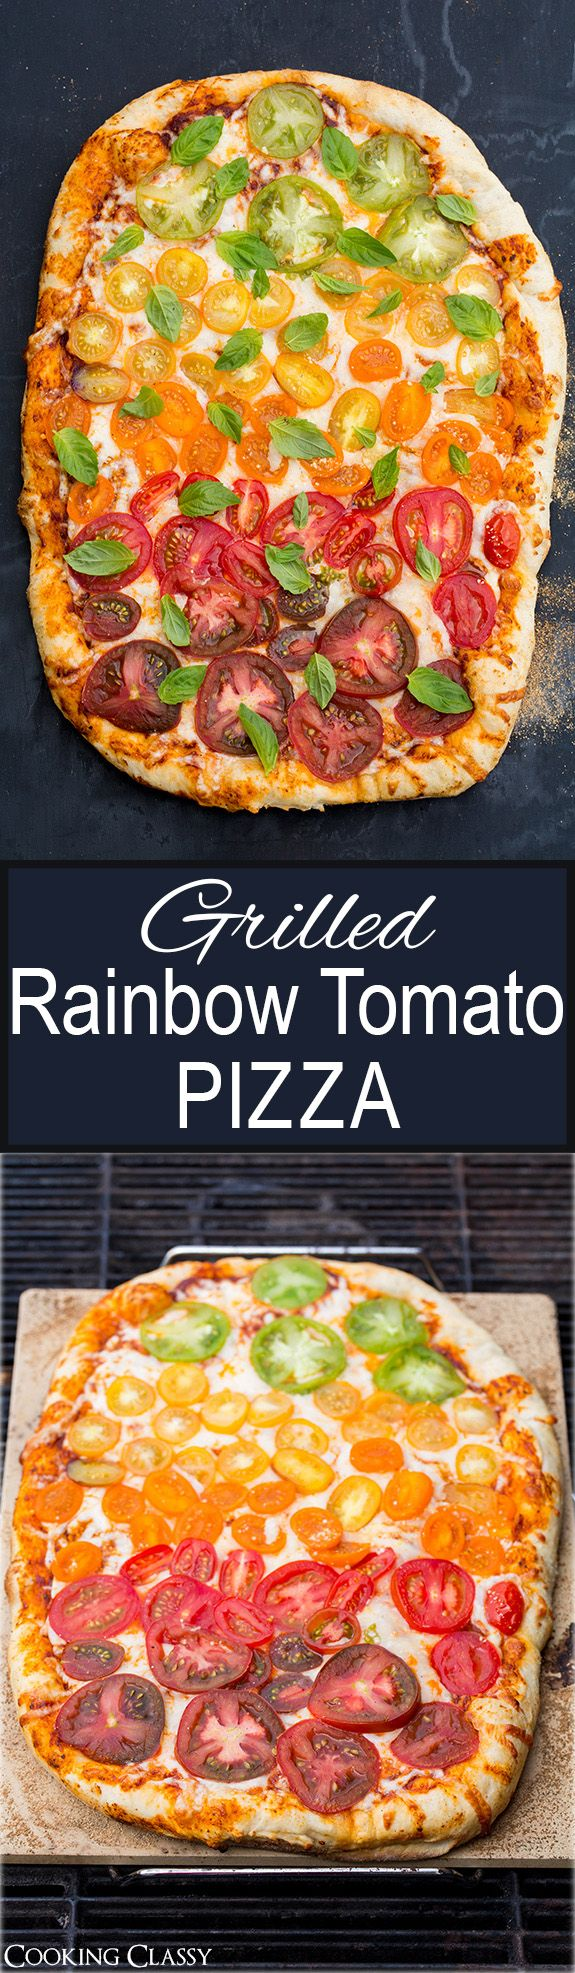 ... Pizza Recipes on Pinterest | Pizza, Grilled pizza and Arugula pizza